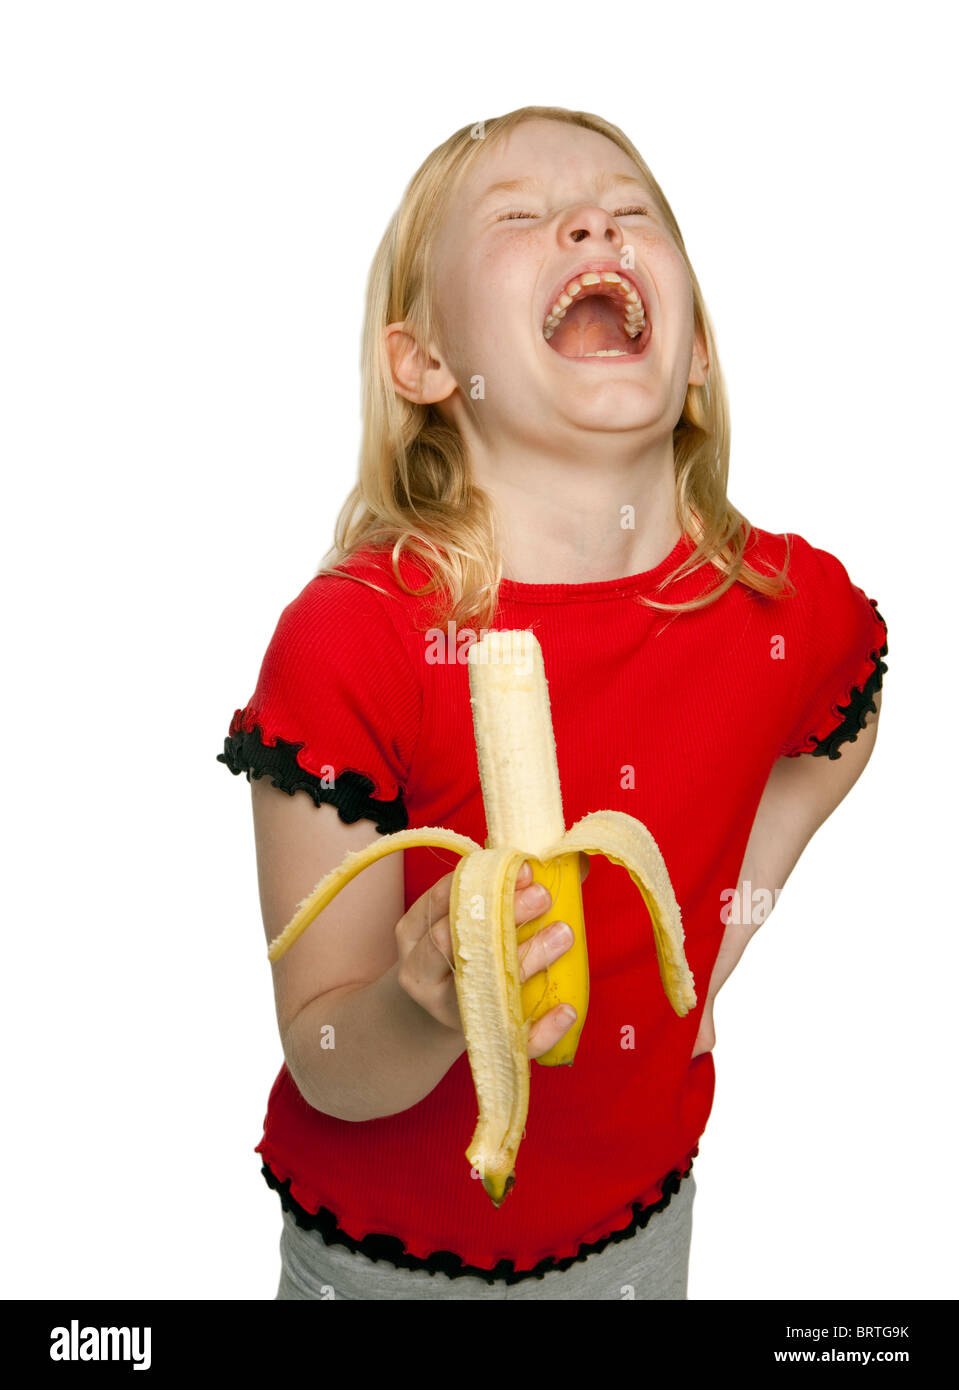 Young happy pretty caucasian girl eating a banana - Stock Image